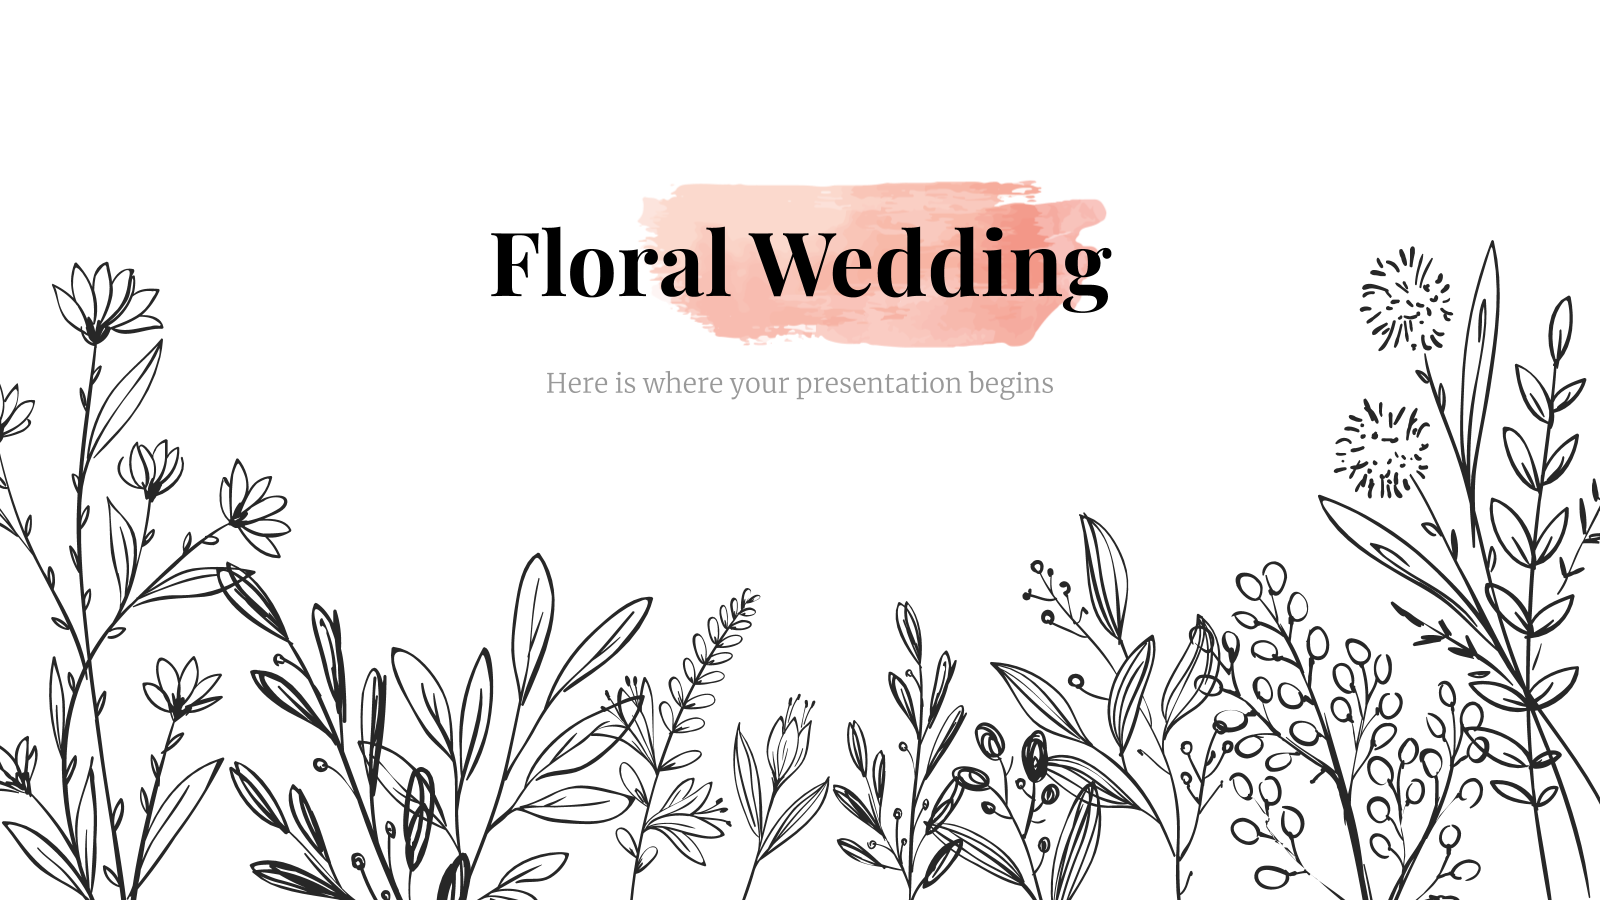 Floral Wedding presentation template